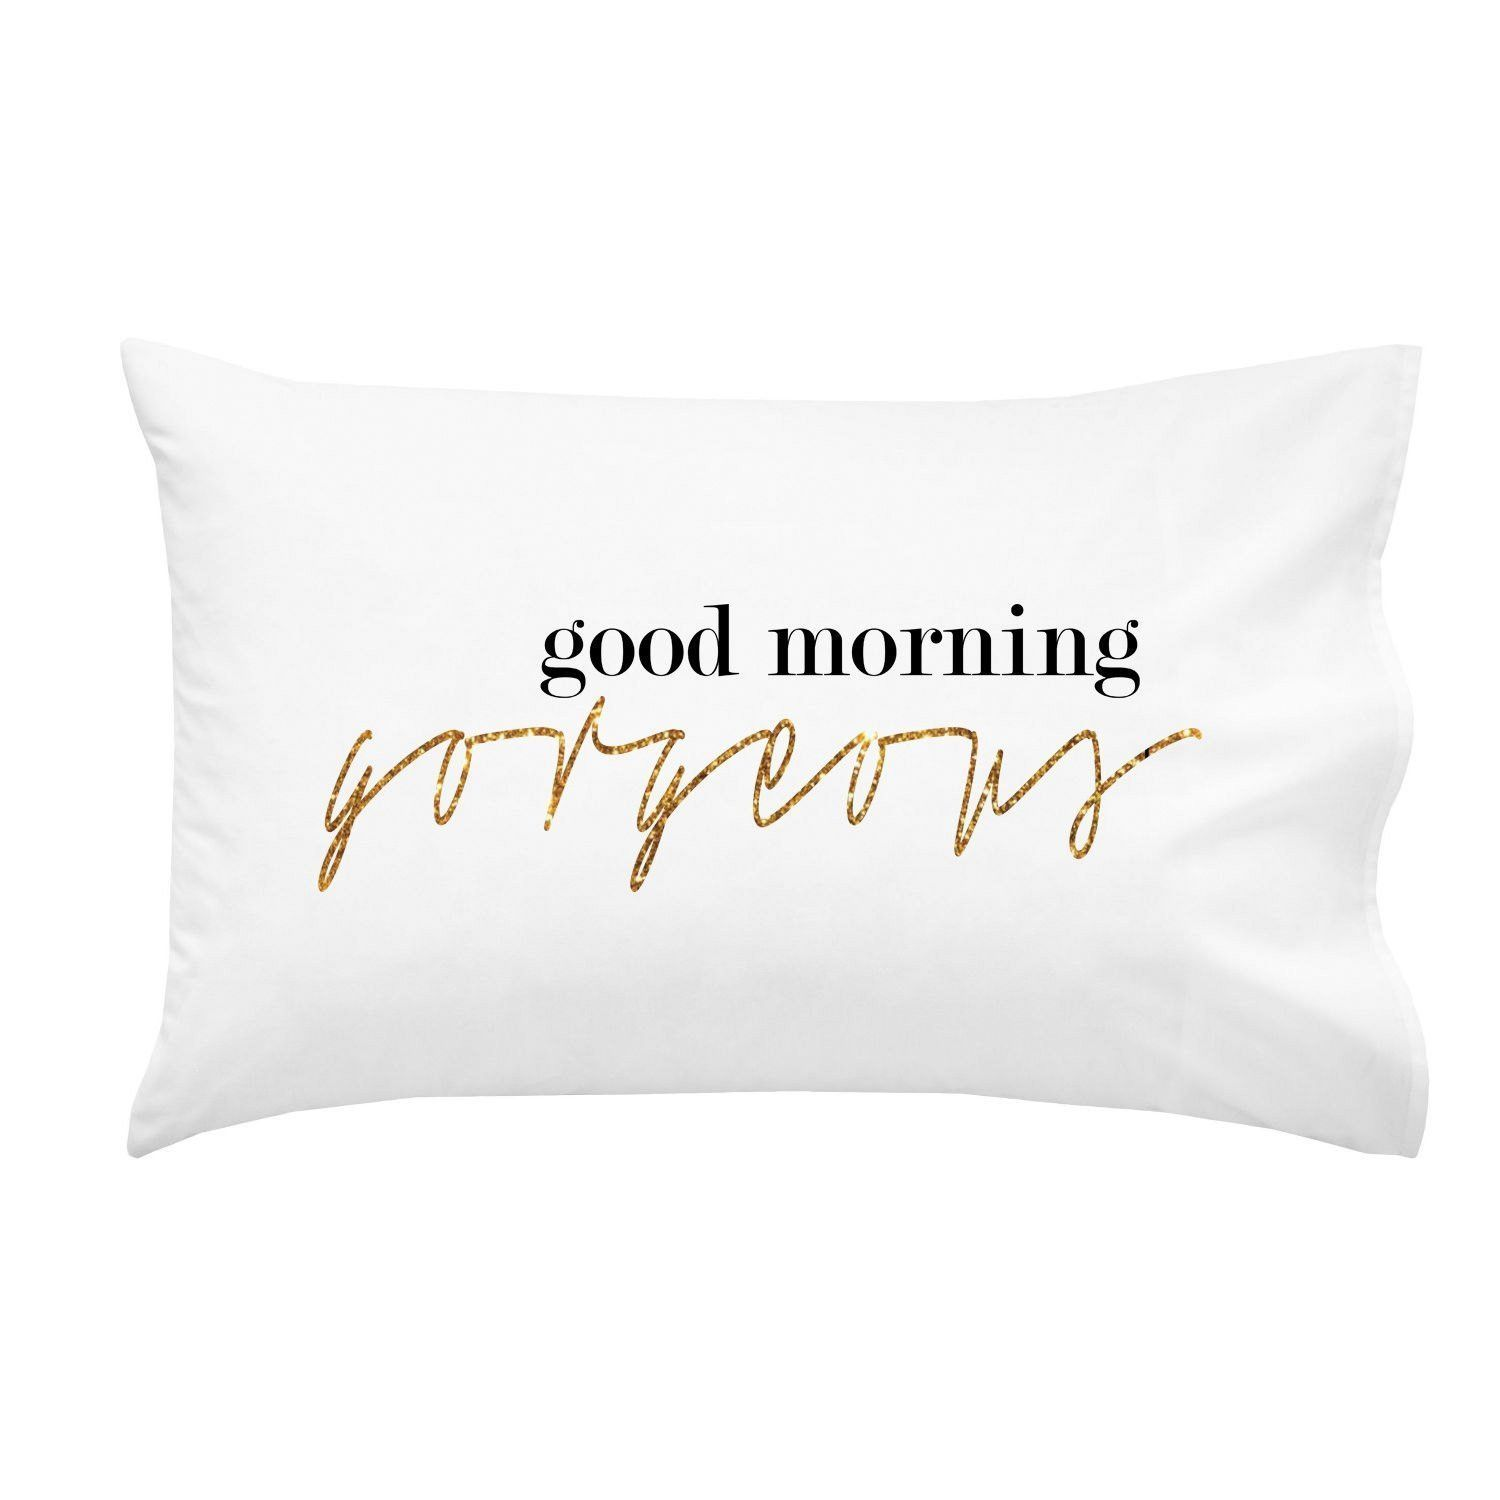 Good Morning Gorgeous Couples Pillow Case Wedding Anniversary Gift His And Her Gifts 1 Queen